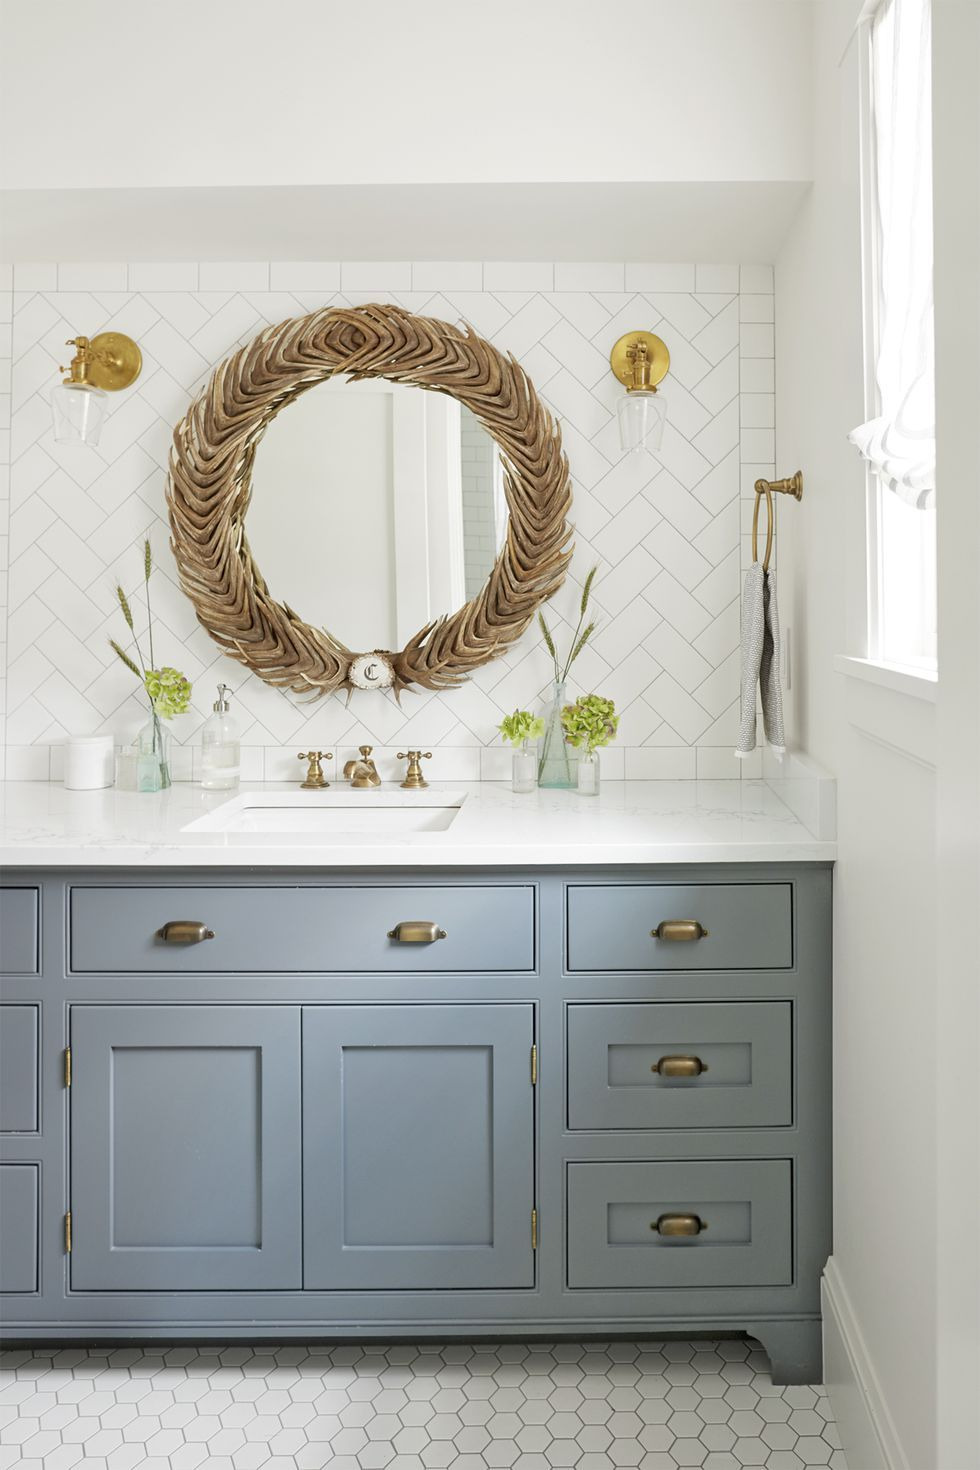 Ideas for Decorating Bathrooms Lovely 100 Best Bathroom Decorating Ideas Decor & Design